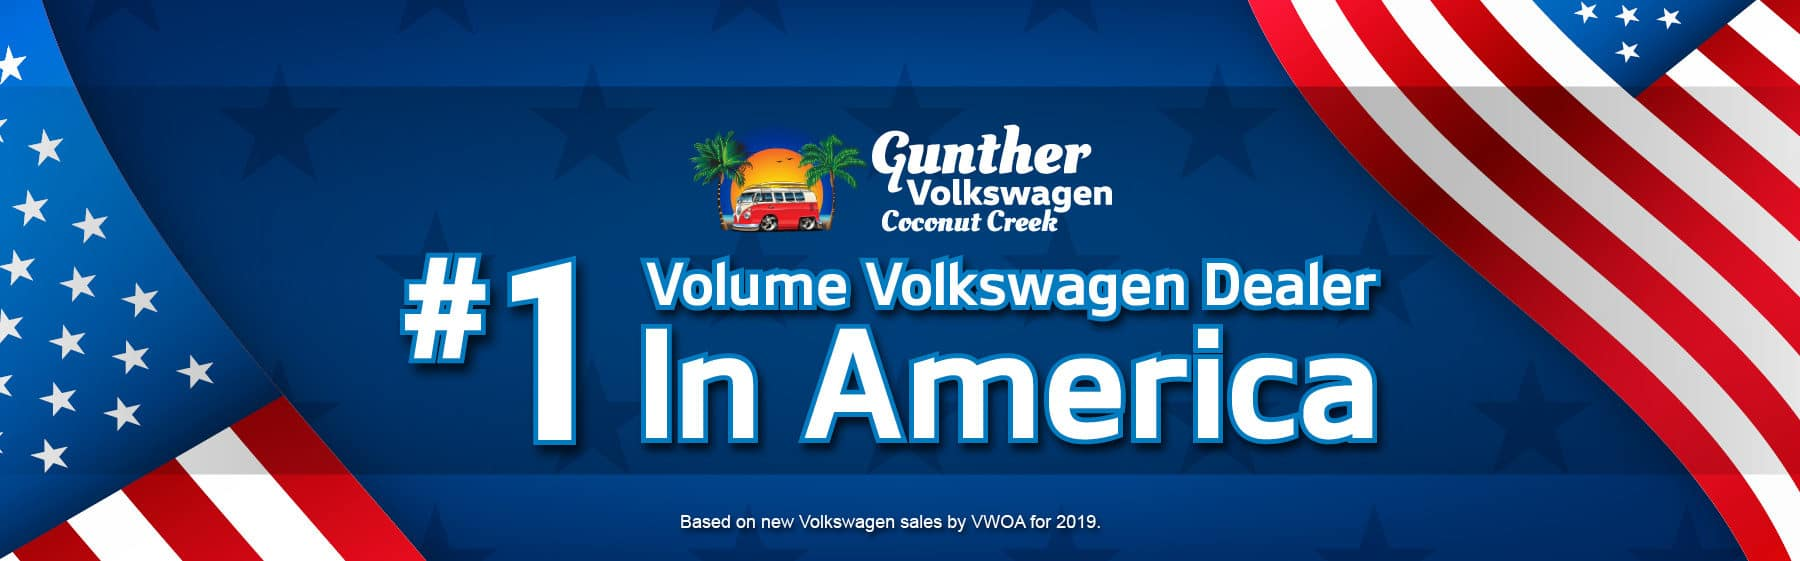 #1 volume volkswagen dealer in america.